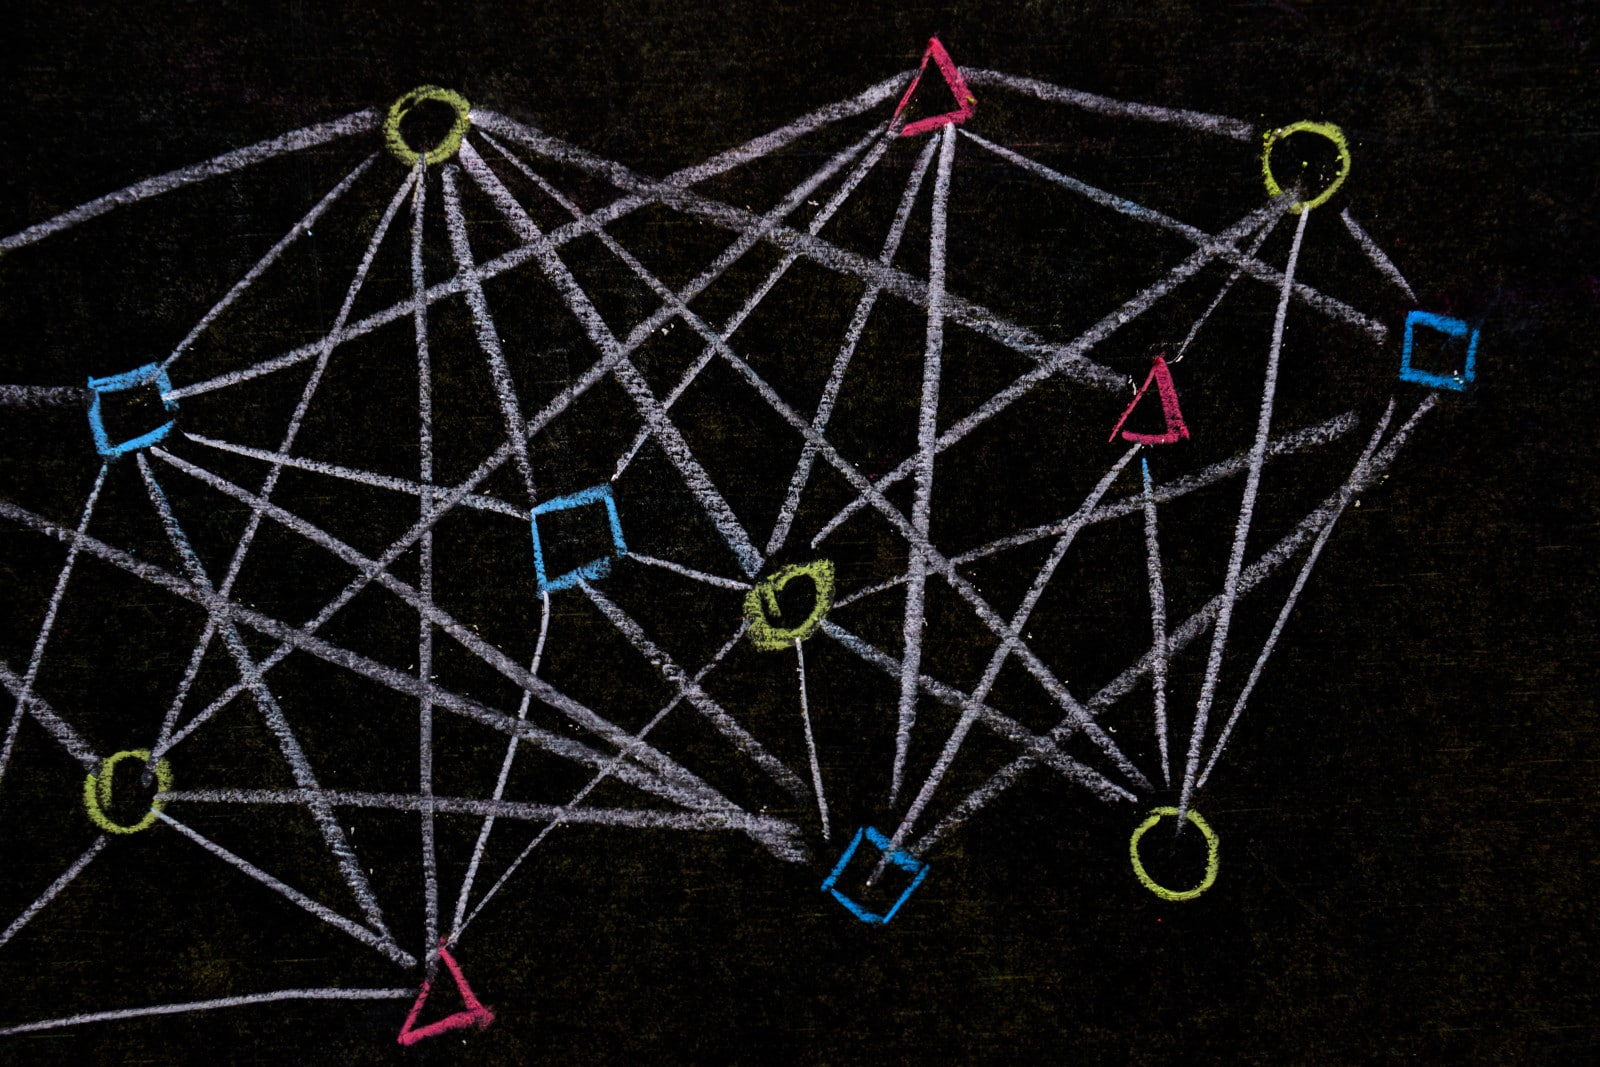 abstract-network-background